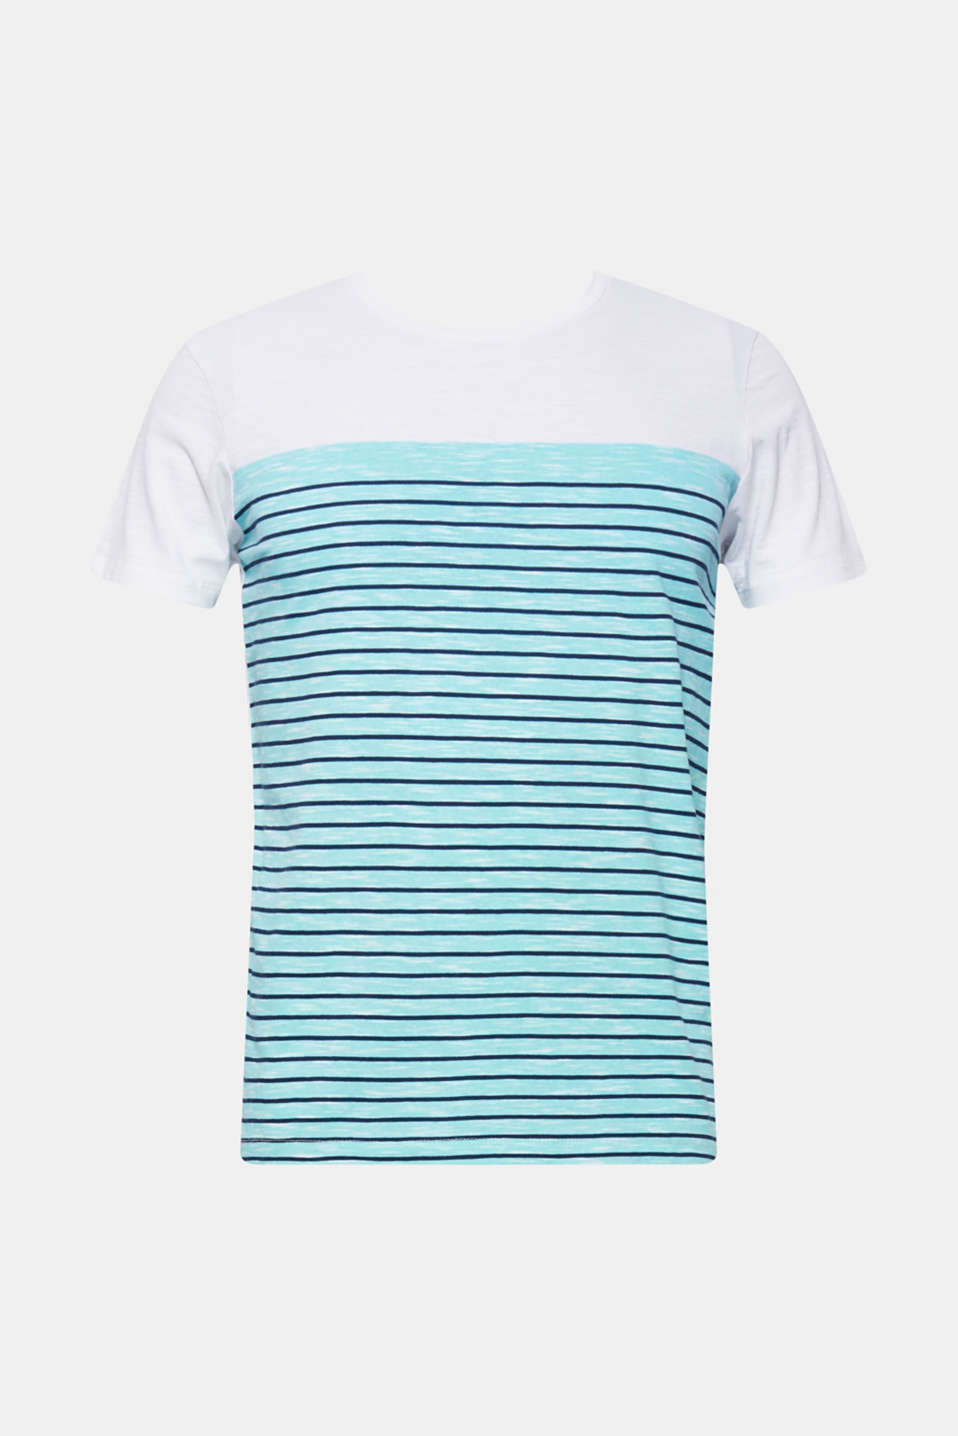 Jersey T-shirt with stripes, 100% cotton, LIGHT AQUA GREEN, detail image number 5